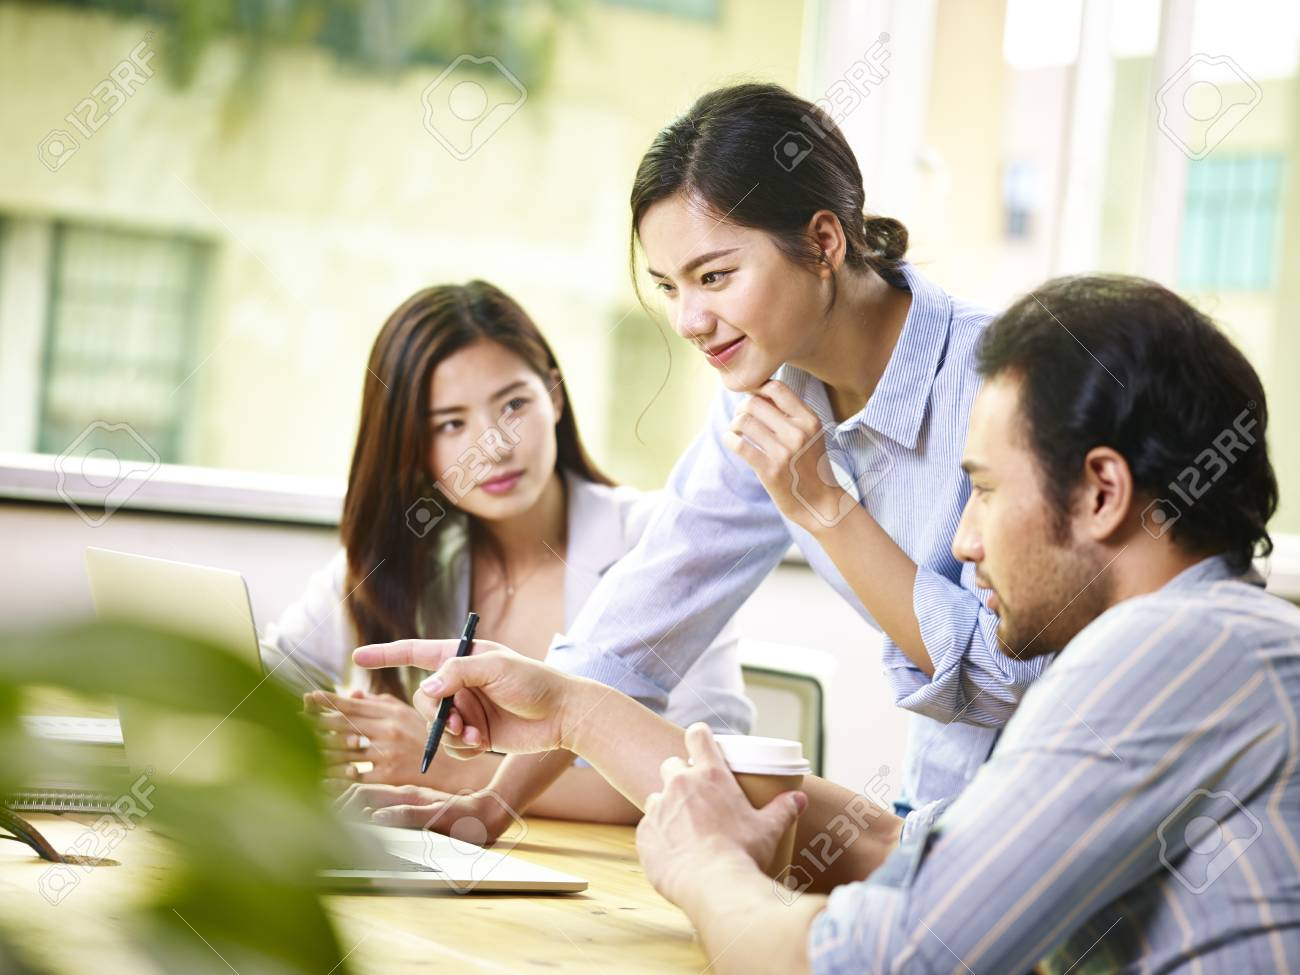 team of young asian business people in casual wear working together in office using laptop computer. - 91514231